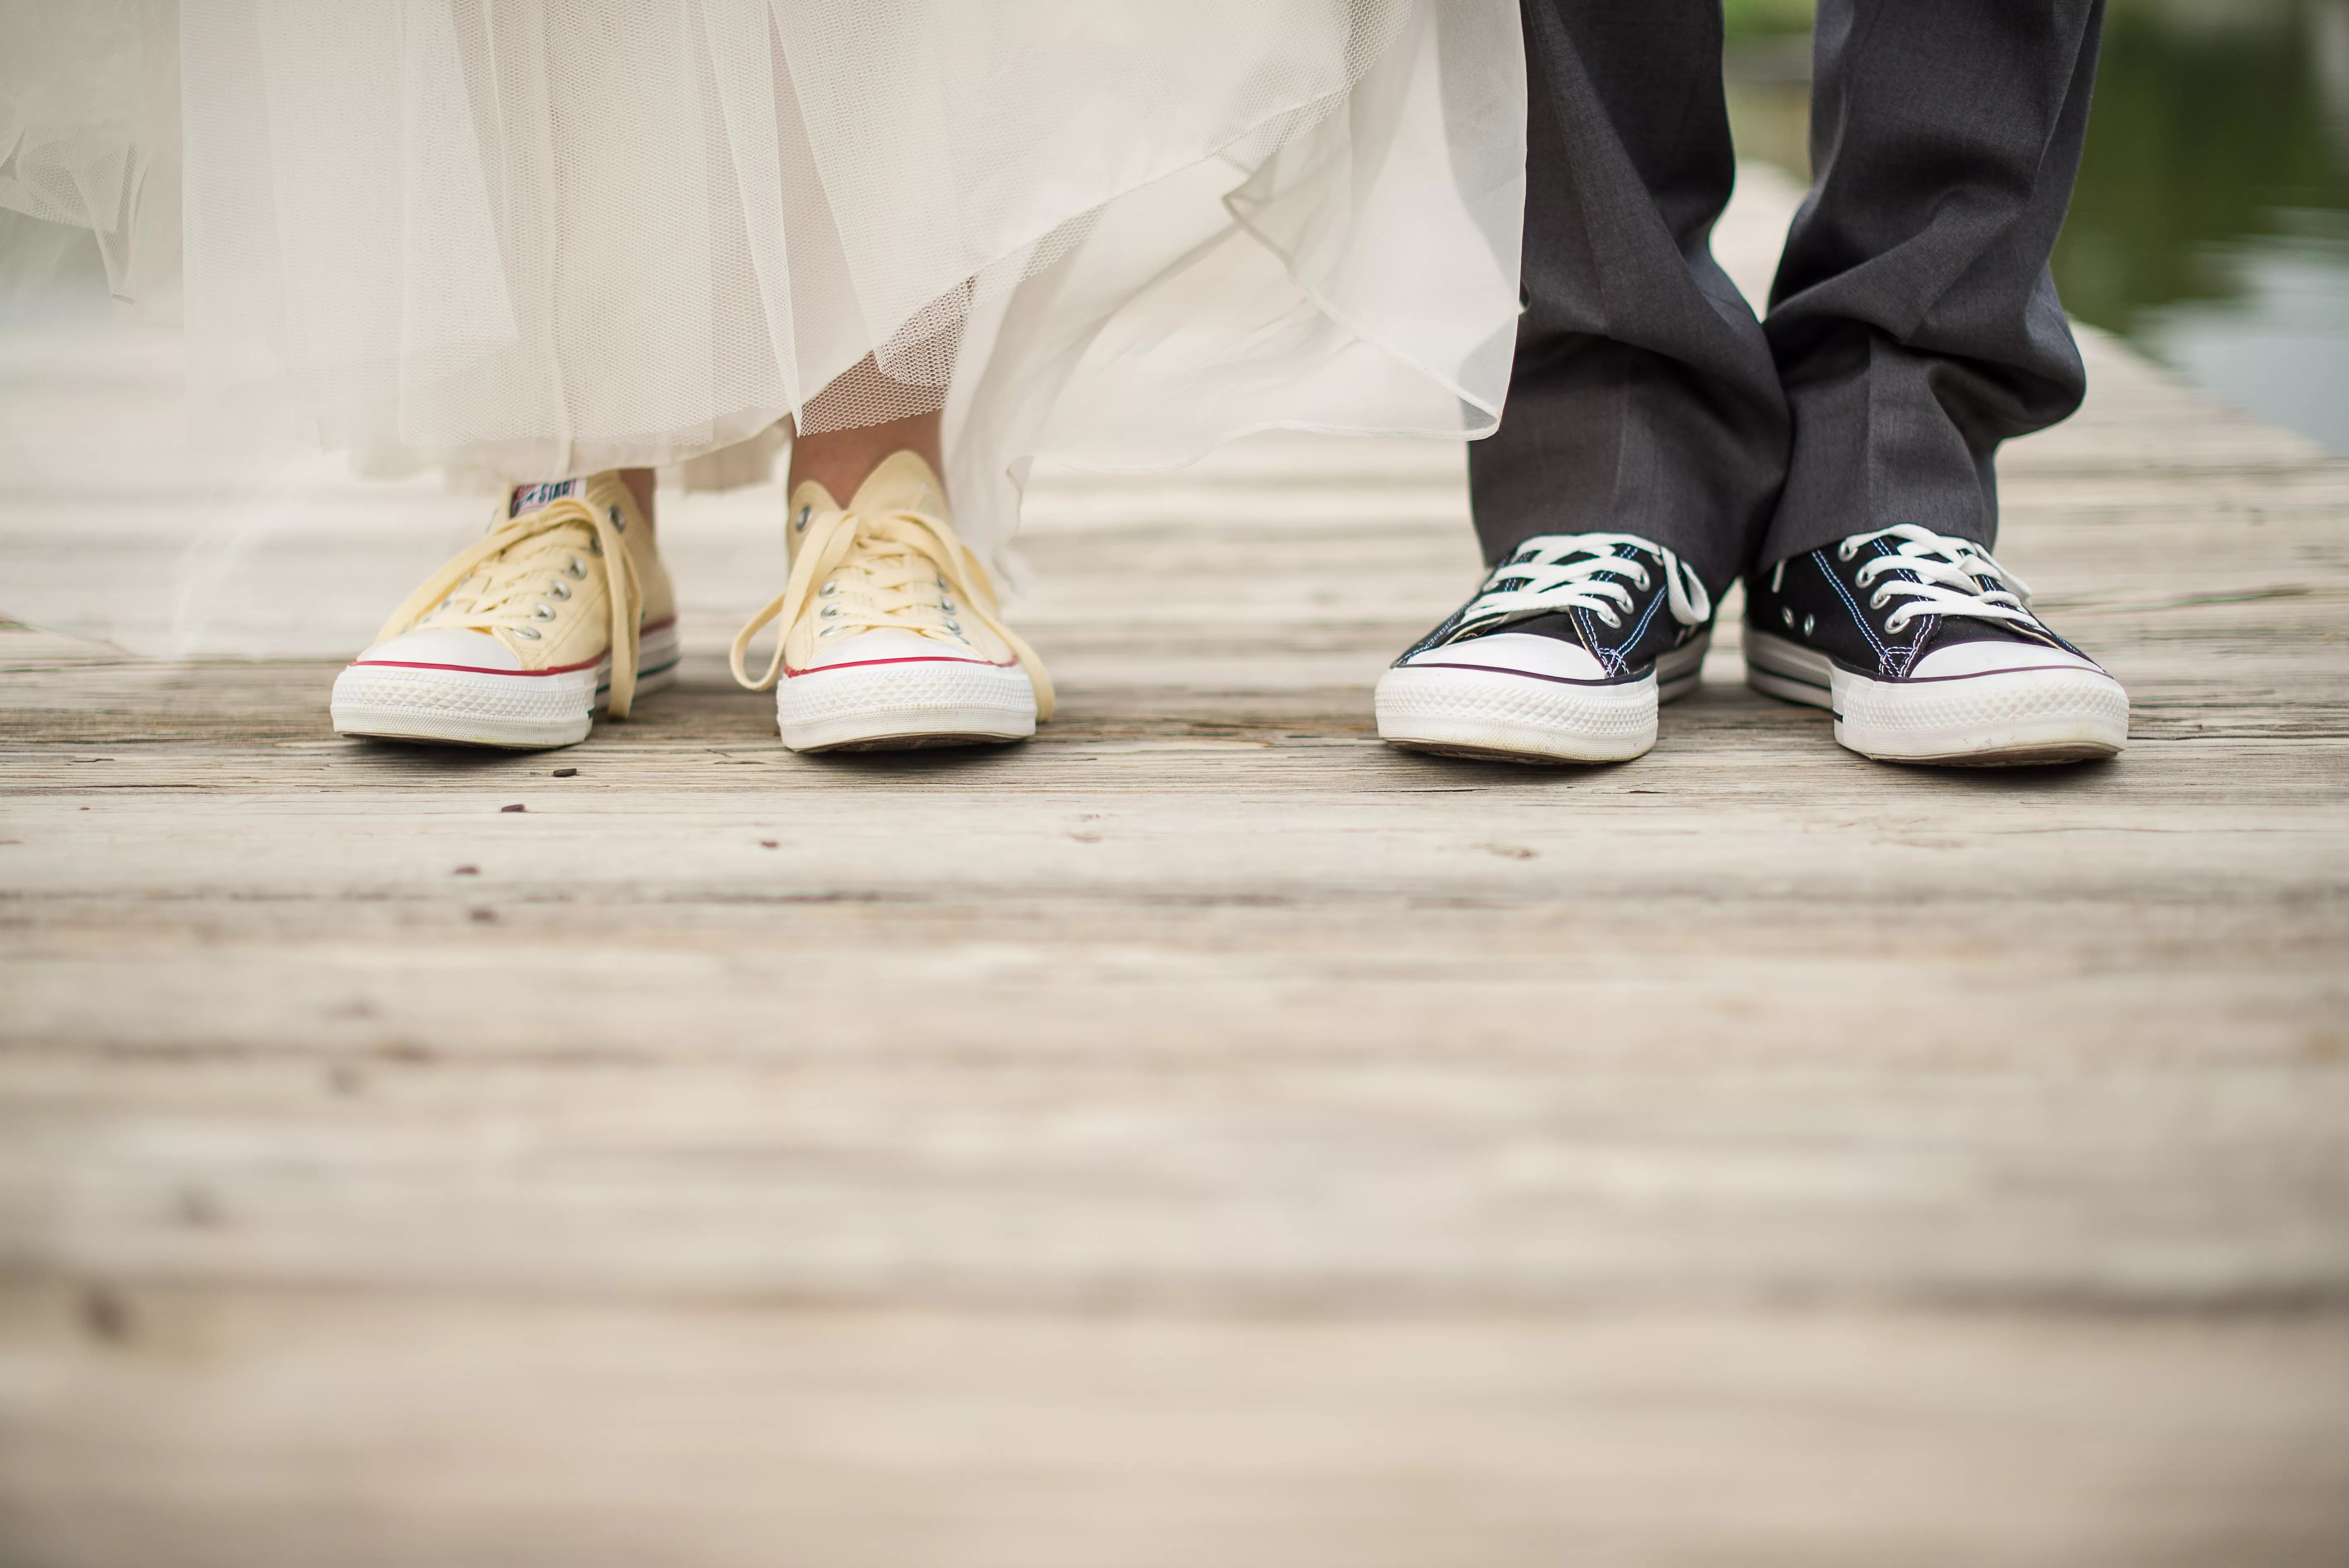 Bride And Groom Wearing Chuck Taylor Converse Shoes